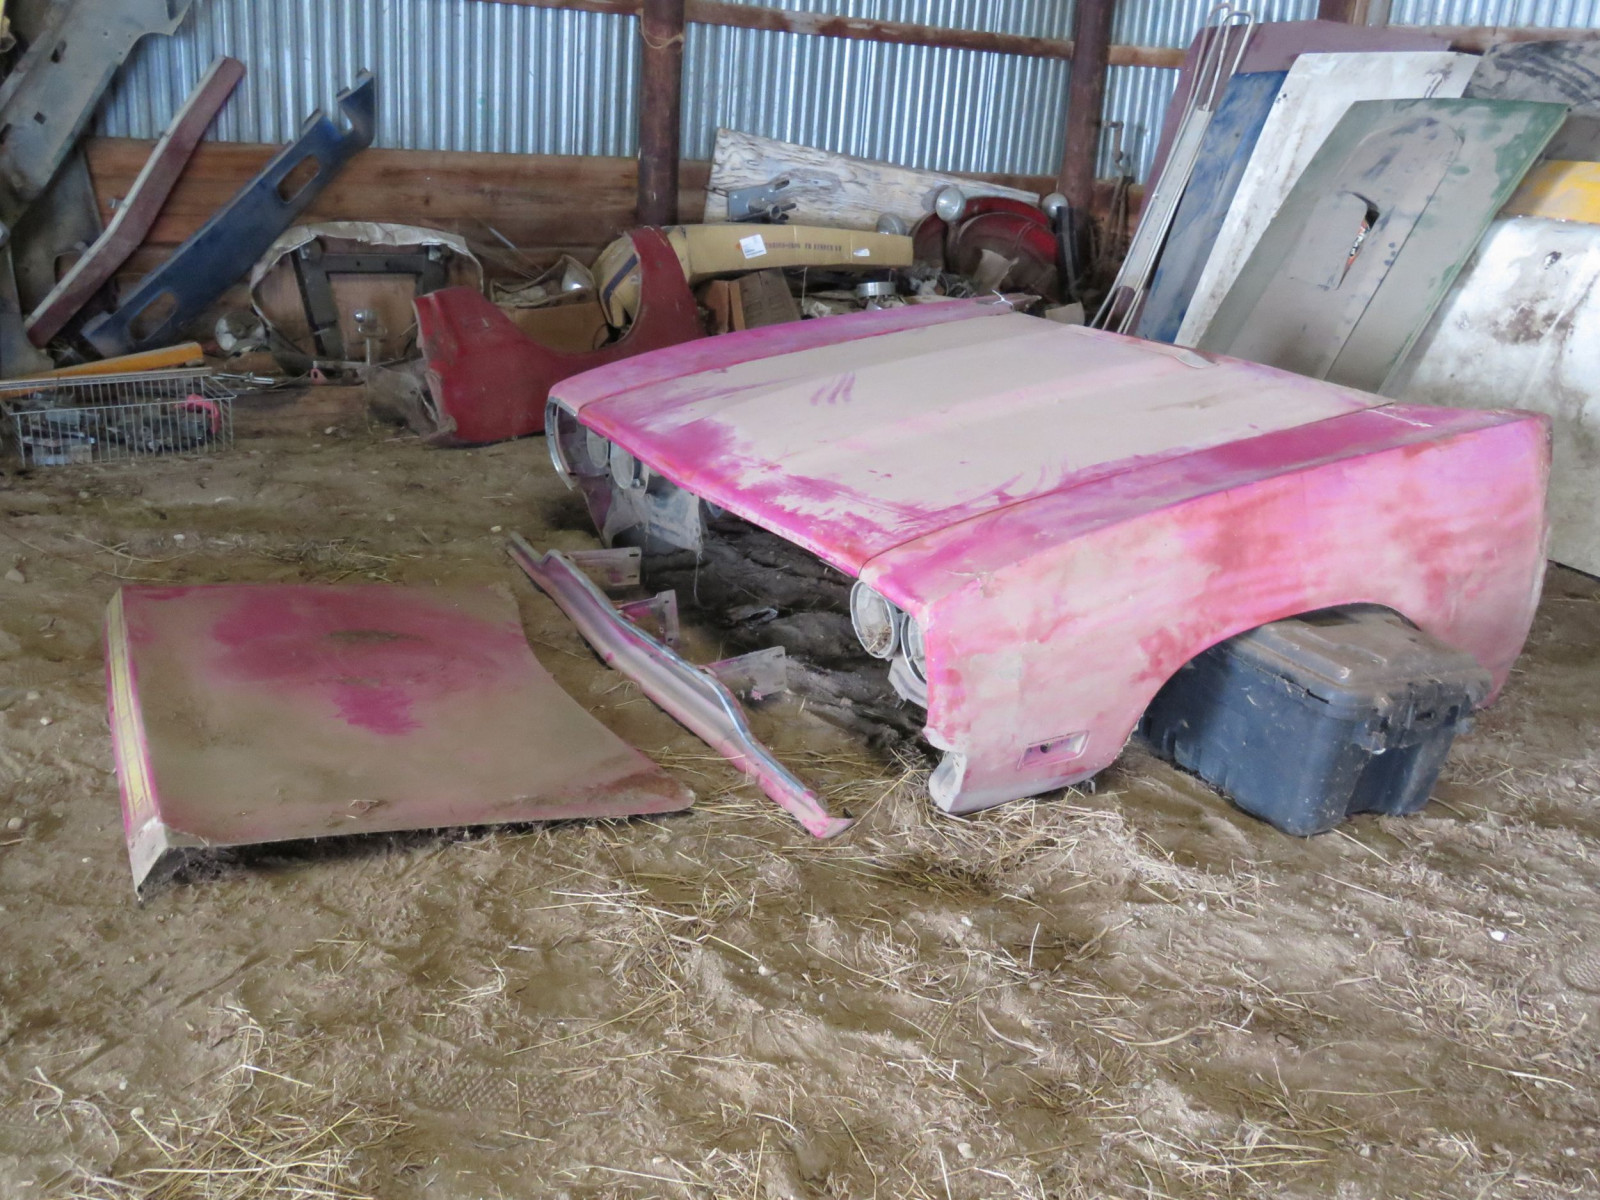 Front Clip for 1970 Plymouth Road runner in Original Pink with Decklid - Image 3